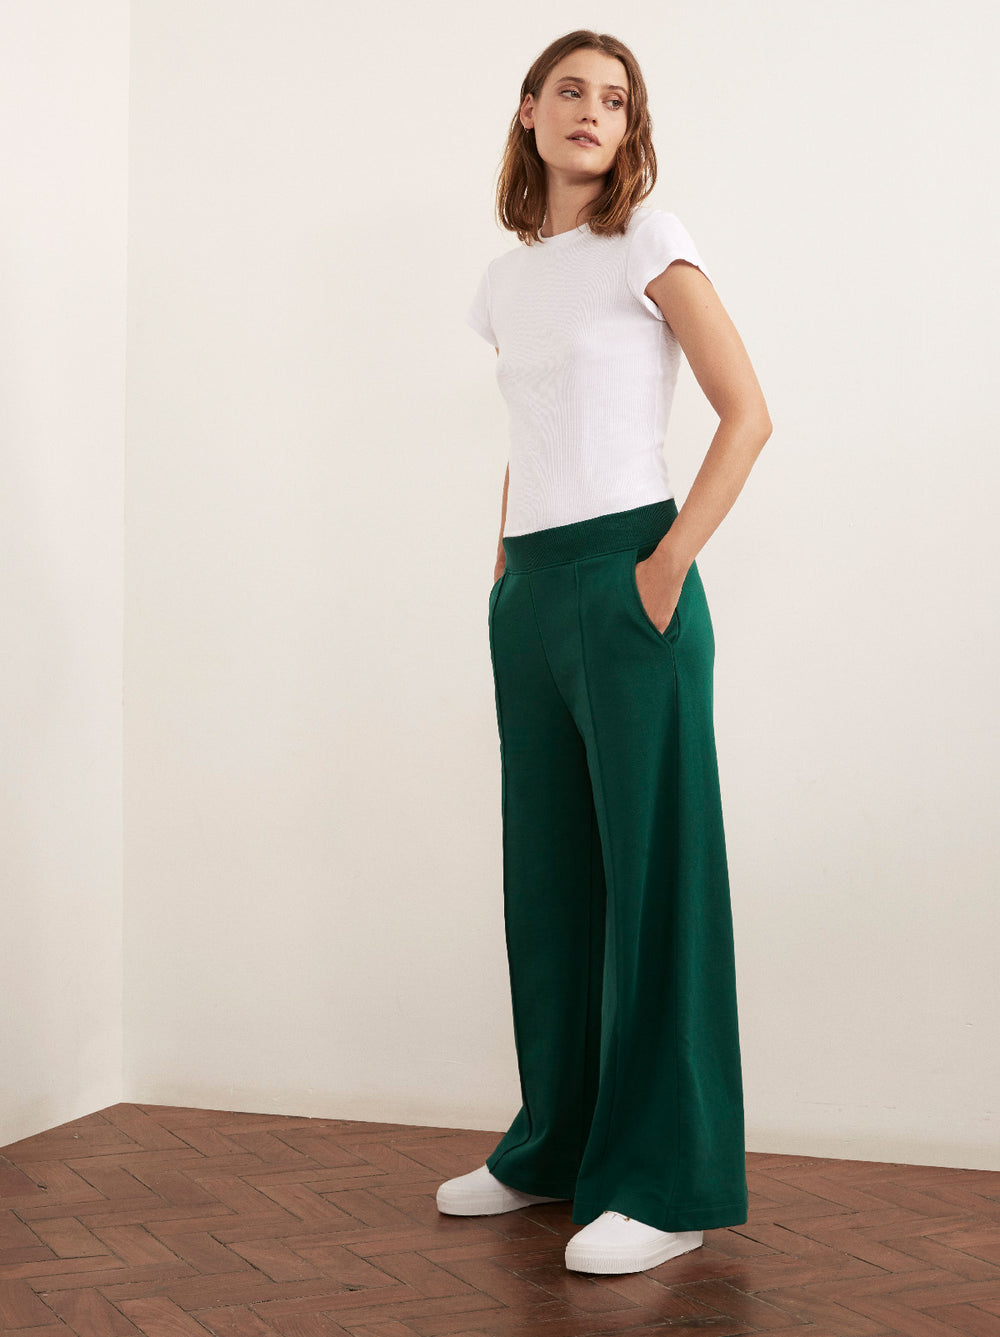 f727d88ca04 ... Lee Green Cotton Wide Leg Sweatpants by KITRI Studio